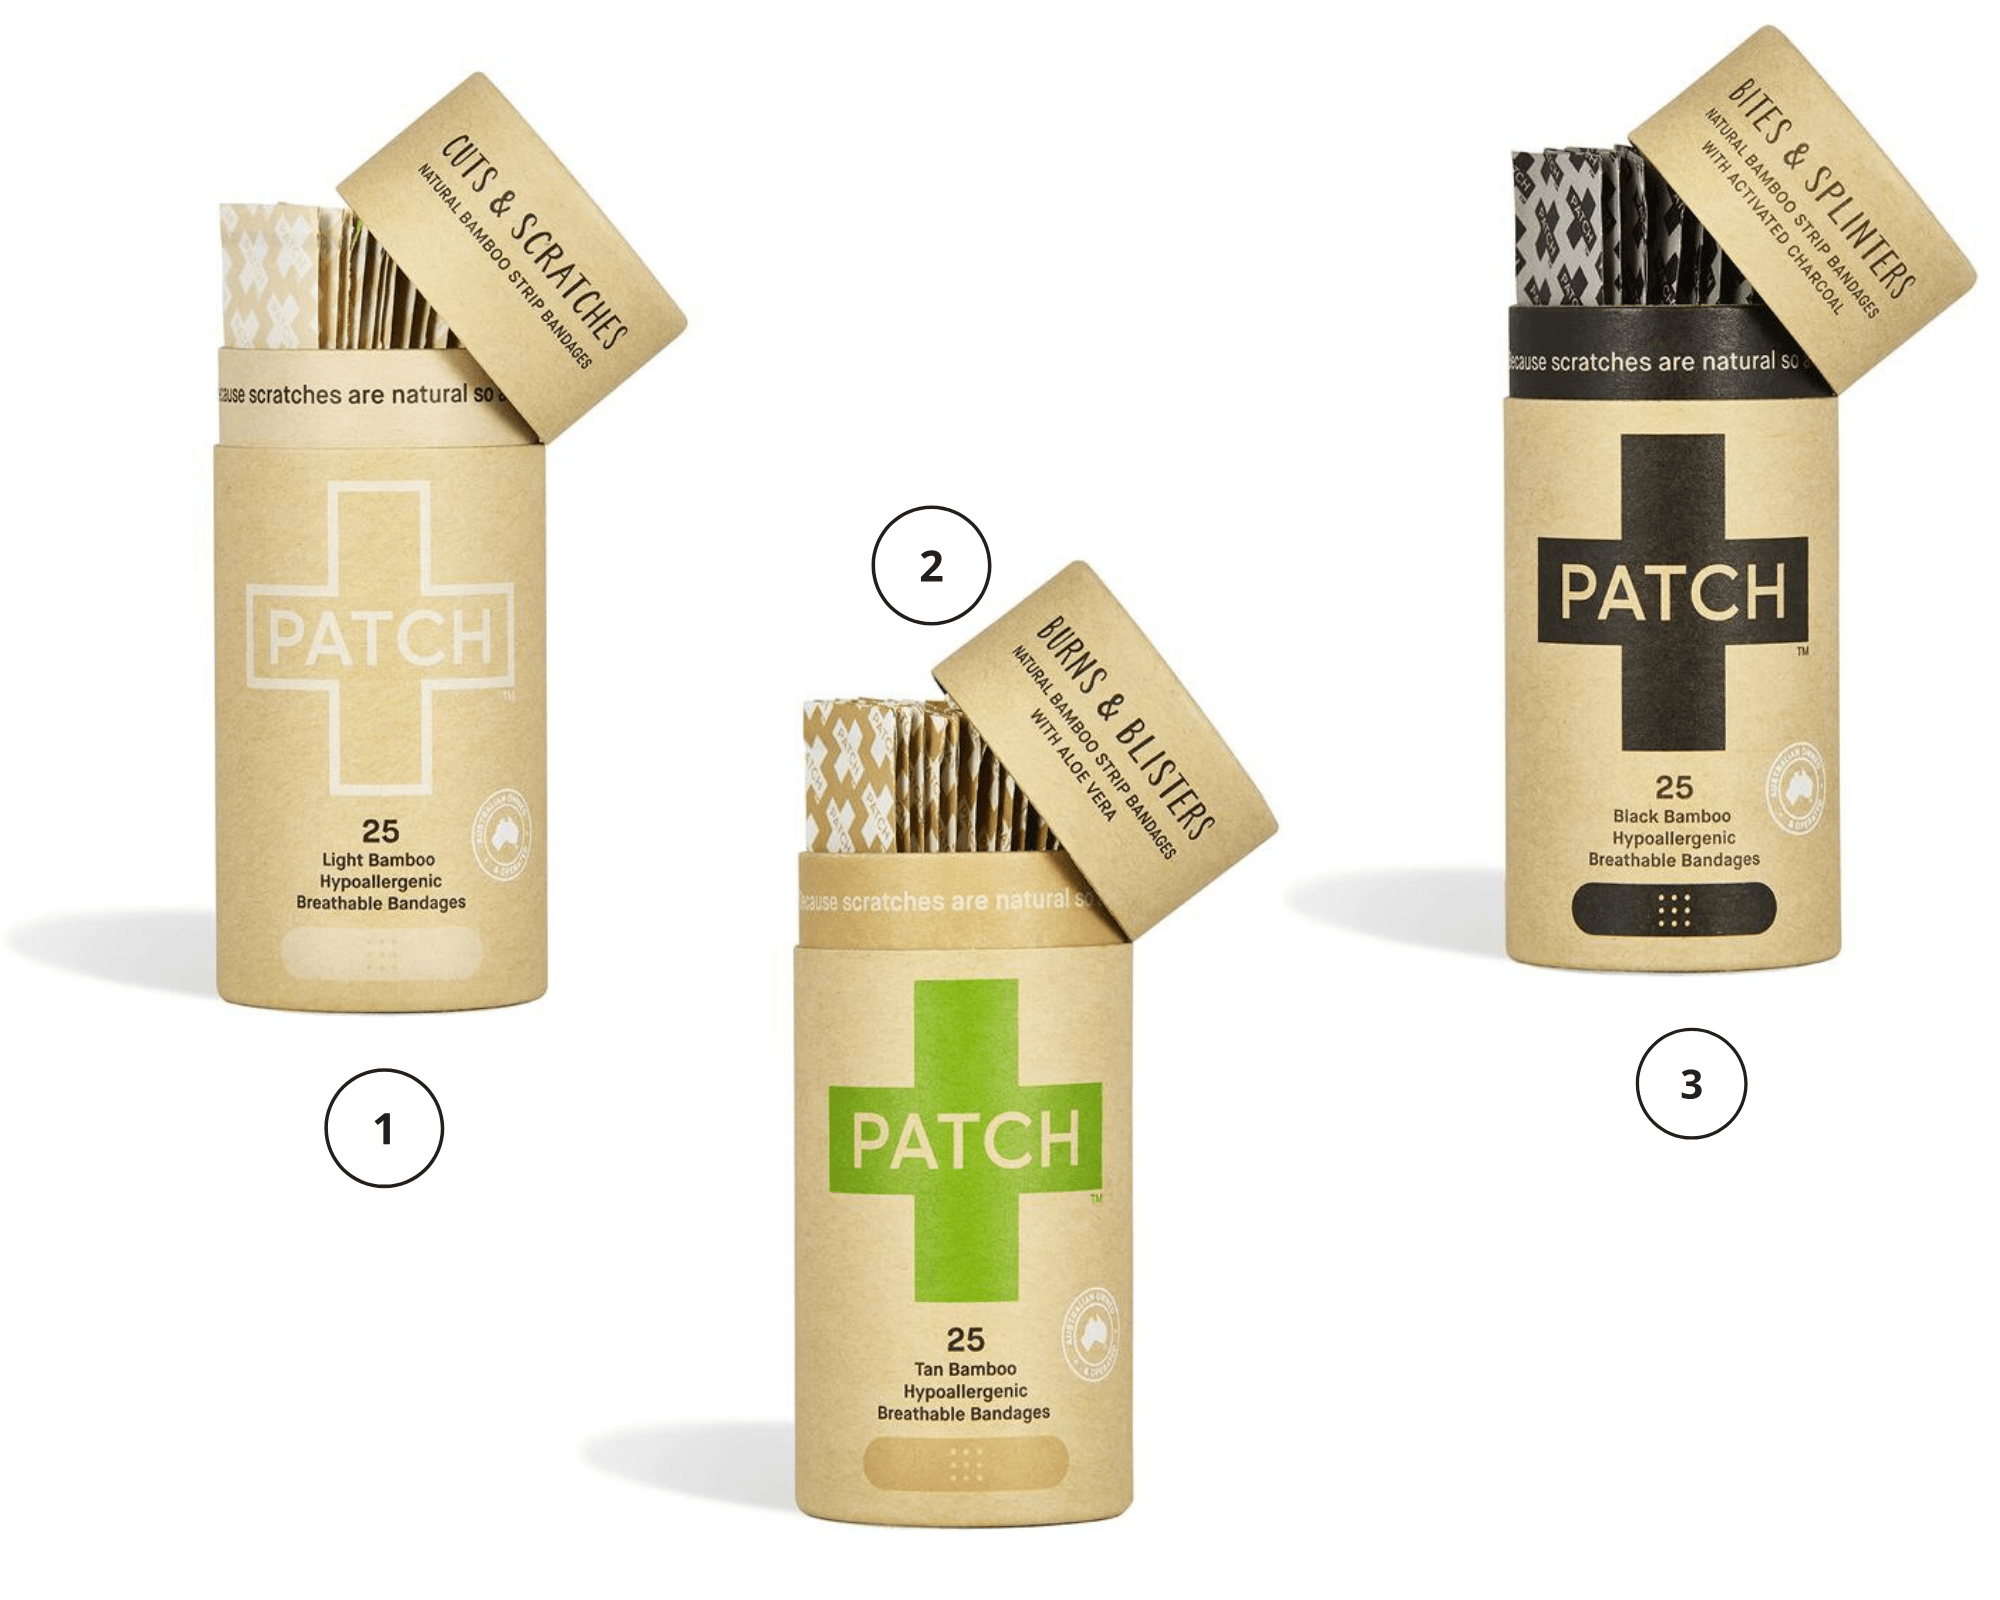 PATCH bandages Clean Beauty Products South Africa5